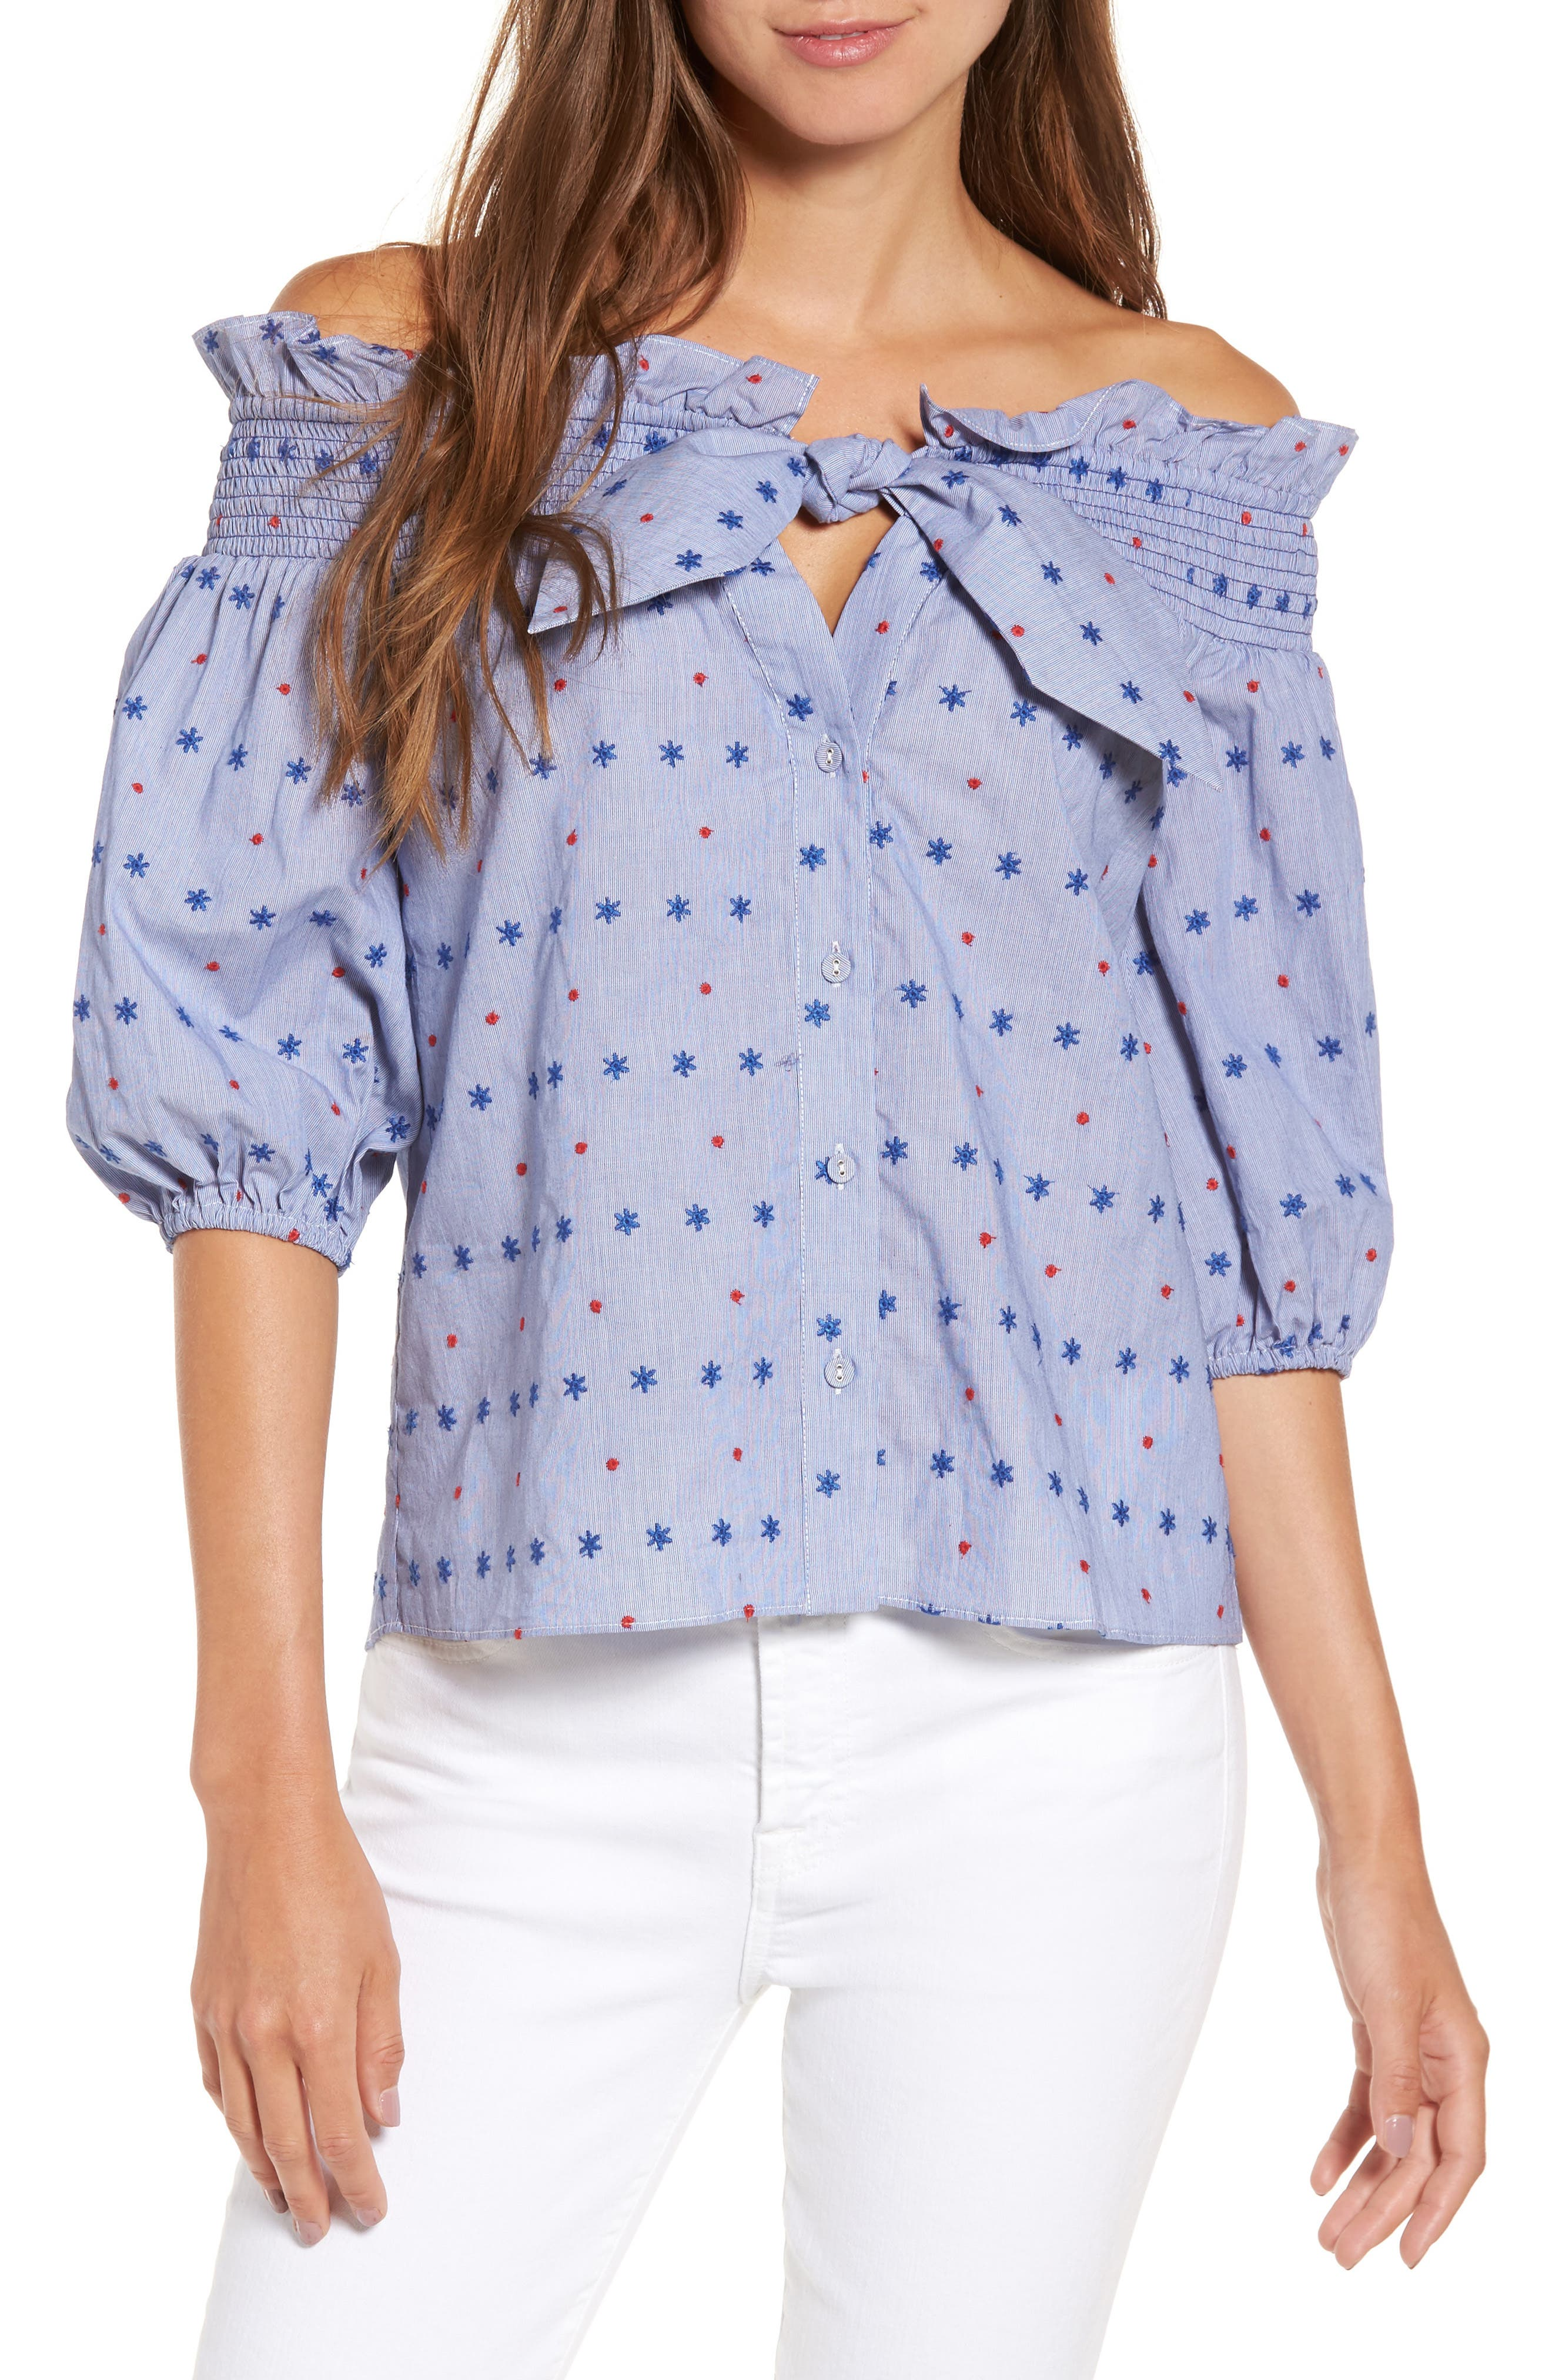 Parker Spade Off the Shoulder Blouse